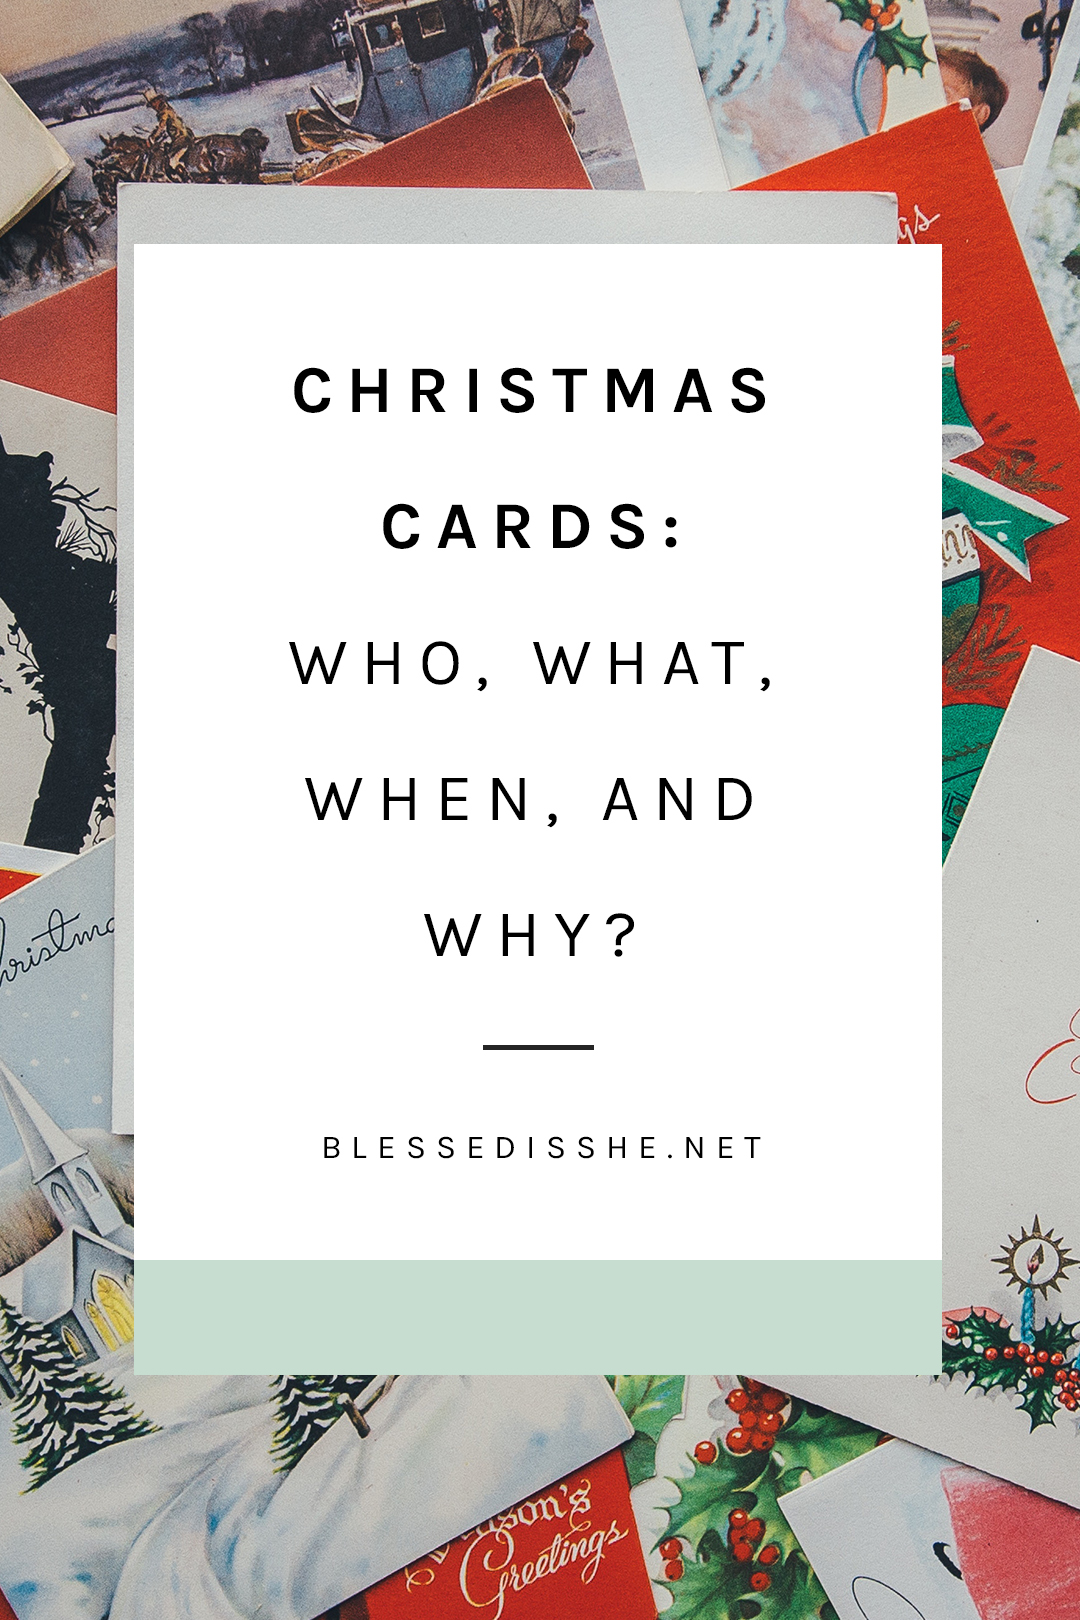 Christmas Cards: Who, What, When, and Why?